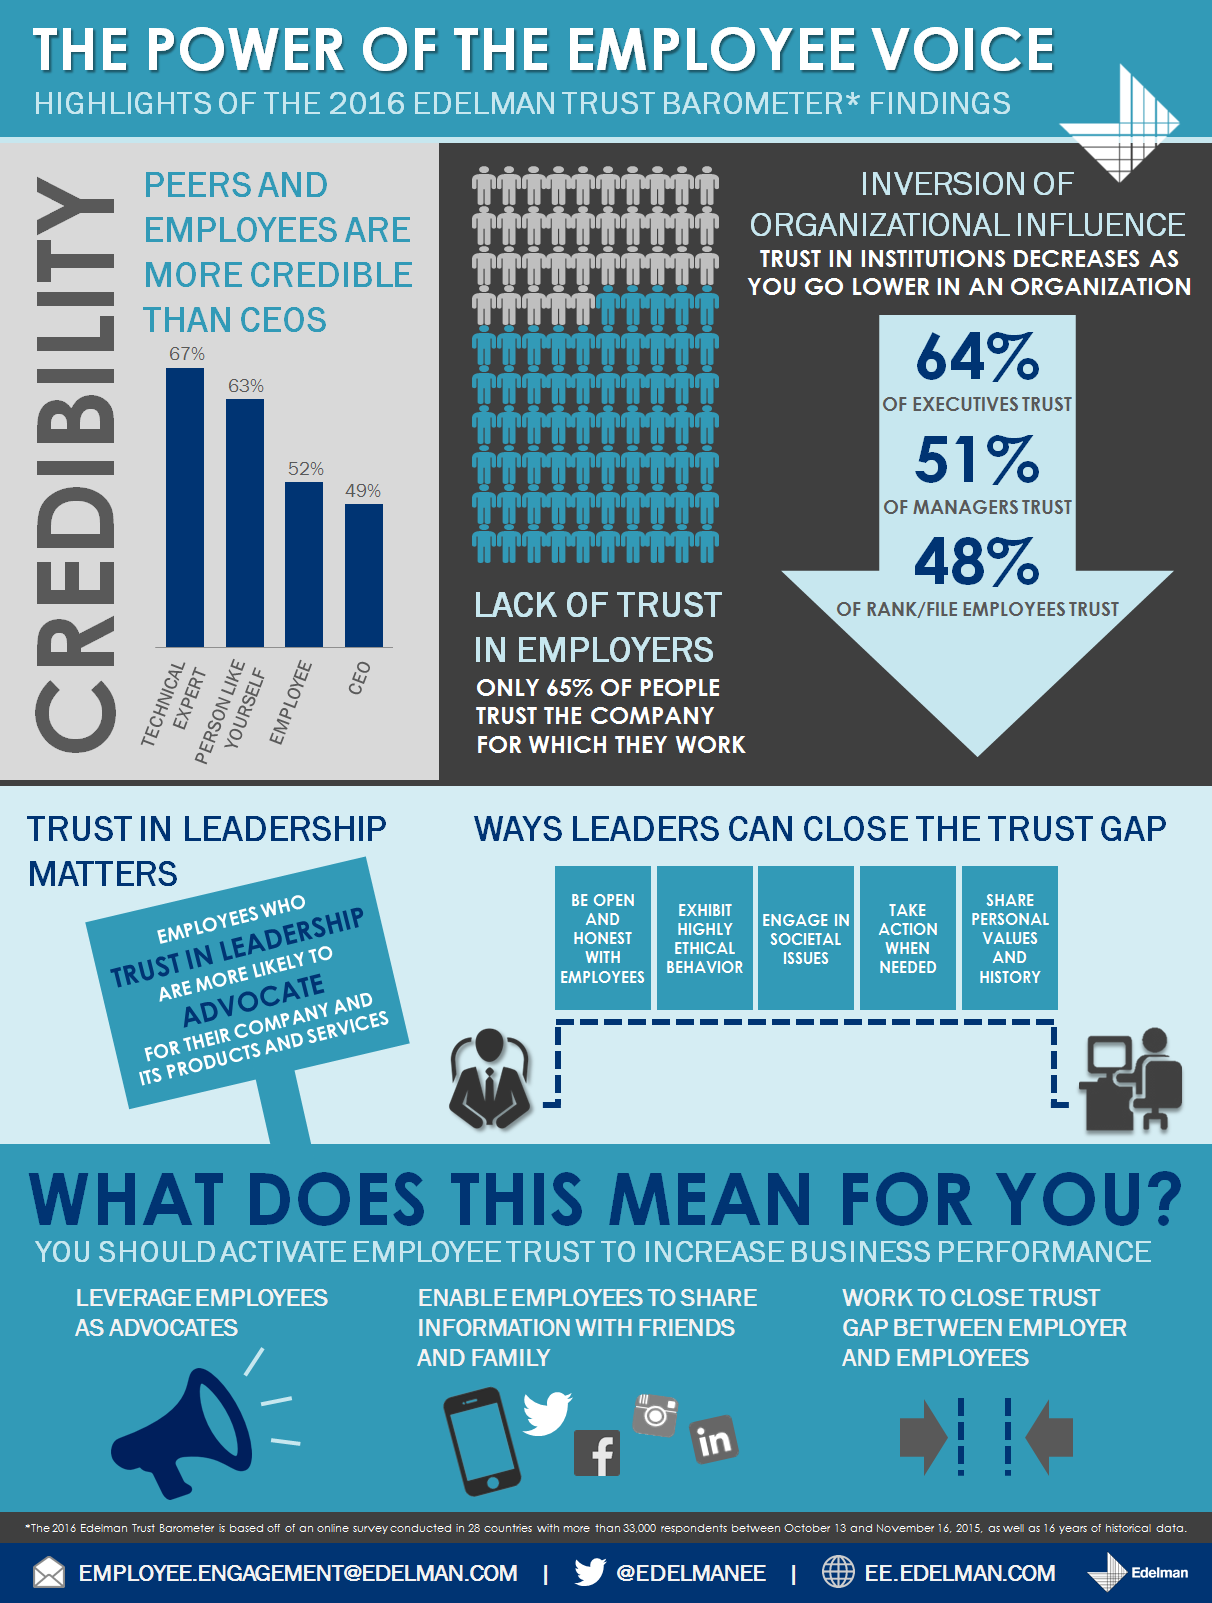 Why don't employees trust their employers?